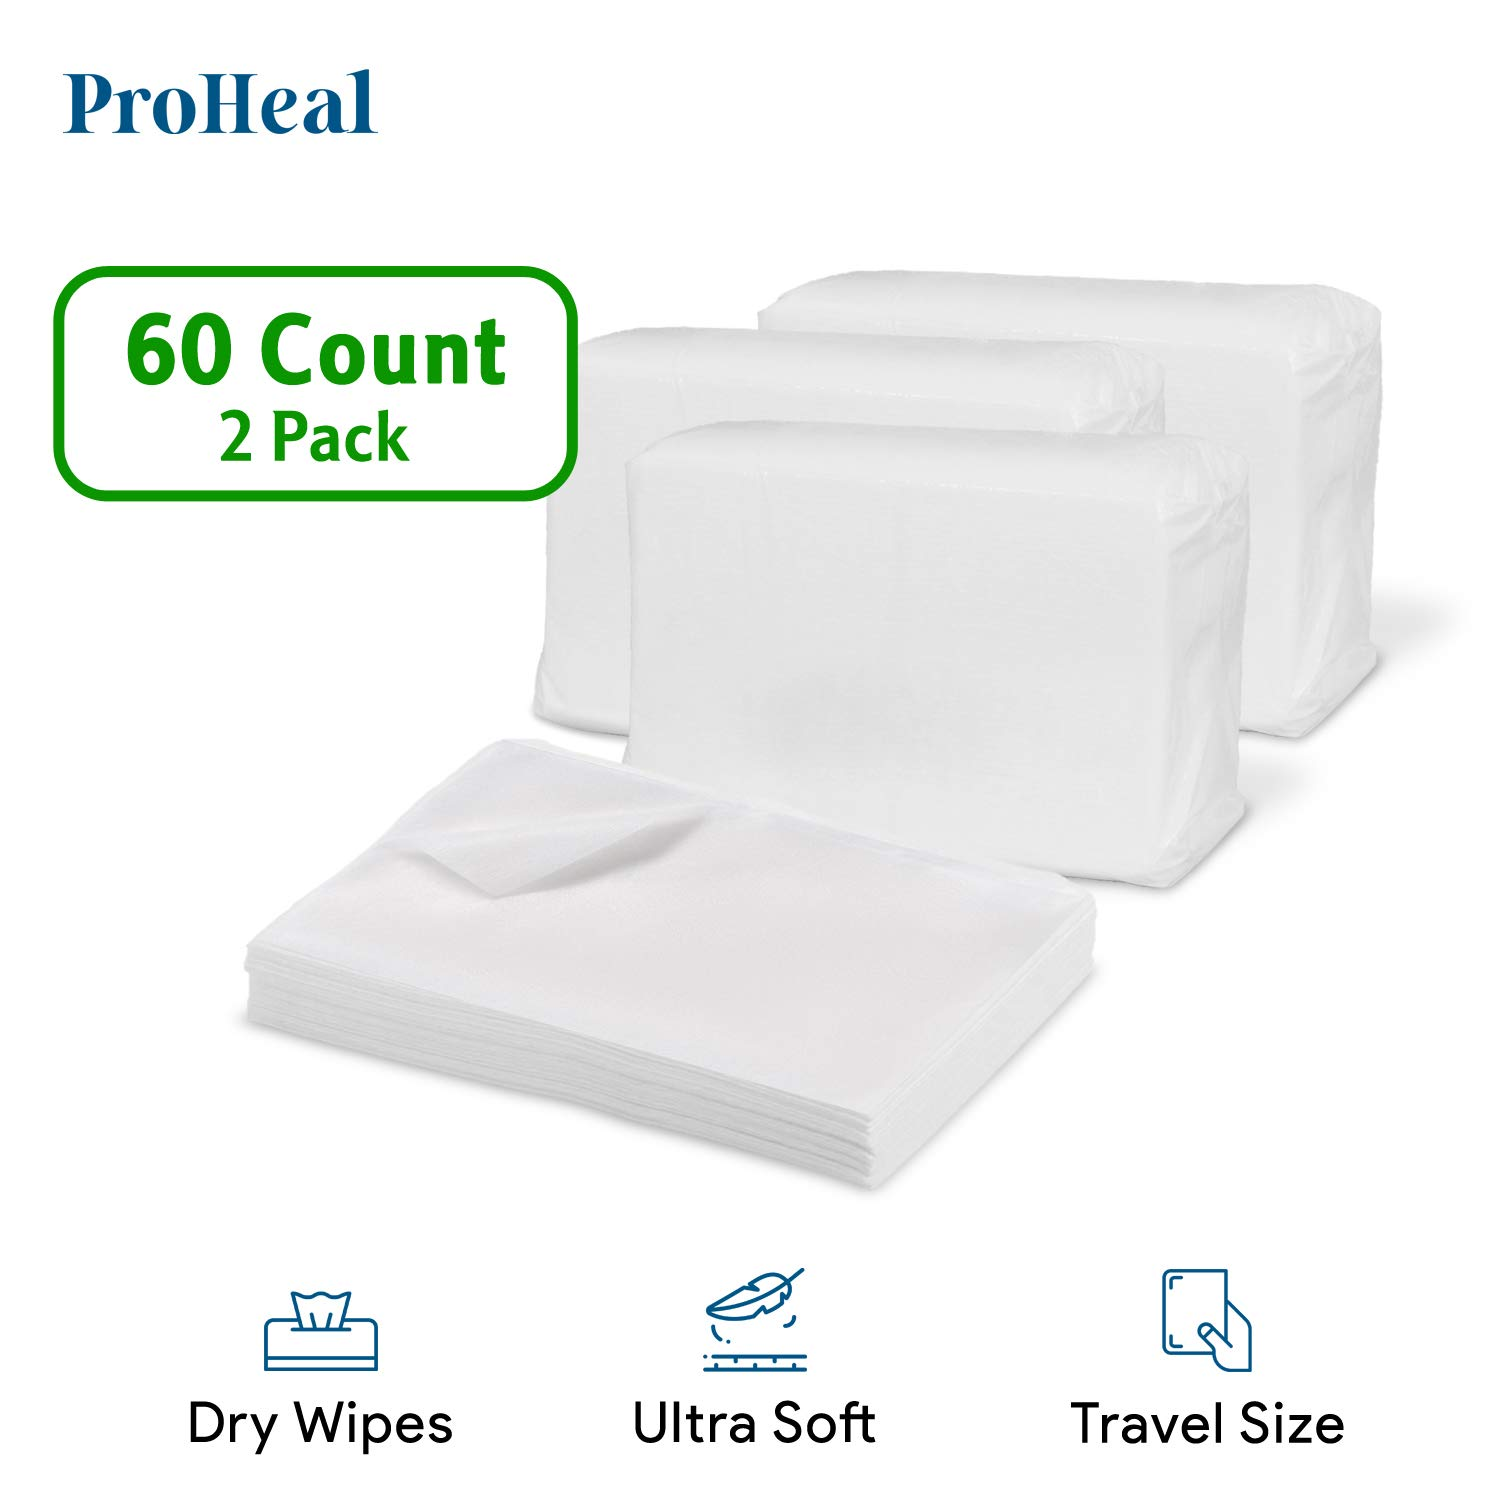 """Disposable Dry Wipes for Baby and Adults, 60 Count (2 Pack) - Ultra Soft Cotton Tissue Washcloths - 7"""" x 13"""" Travel Size - Non-Moistened Cleansing Cloths for Incontinence, Body and Face - ProHeal"""